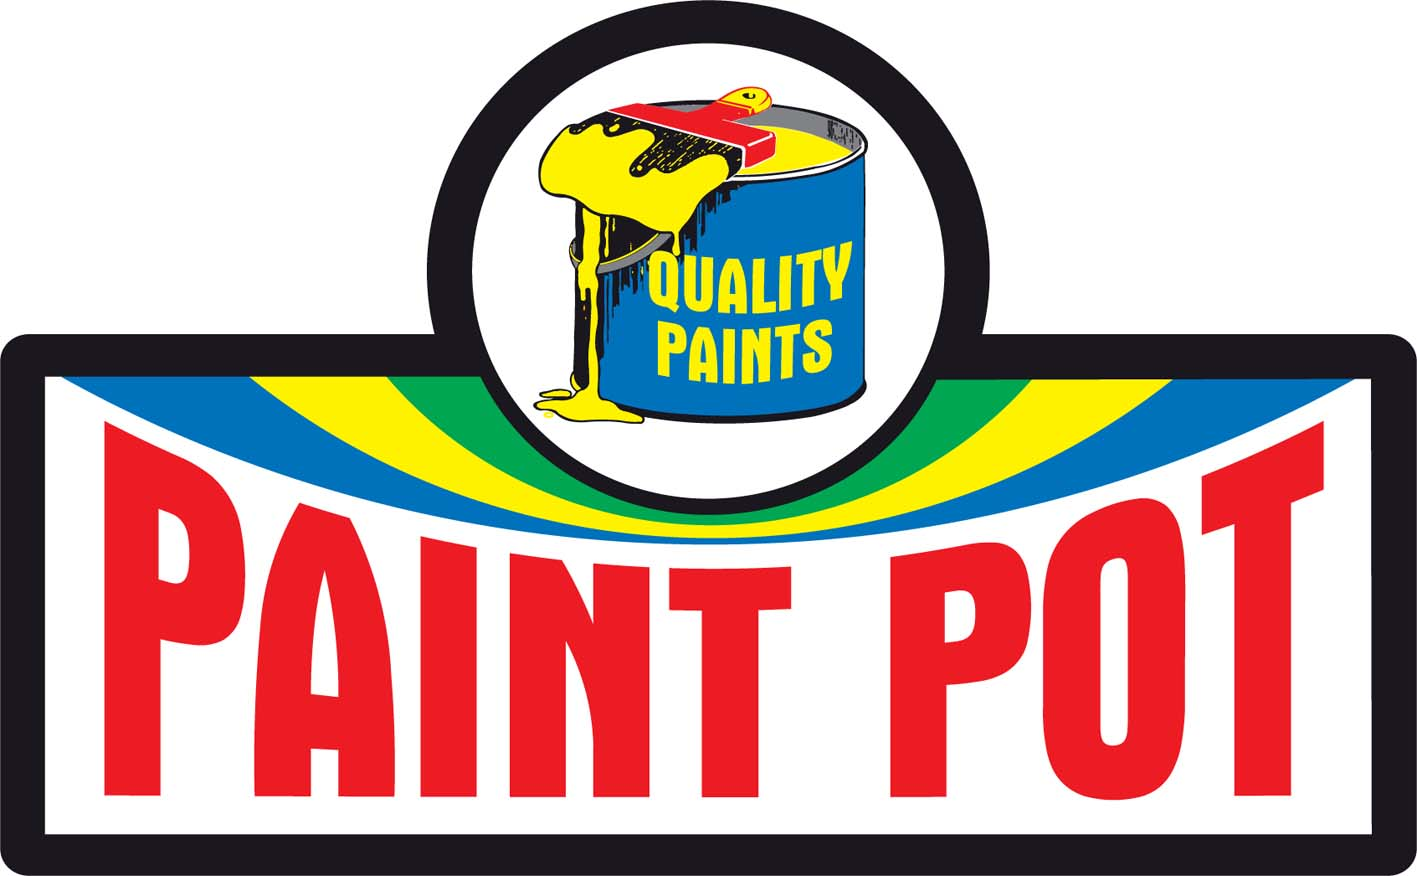 Paint Pot Group